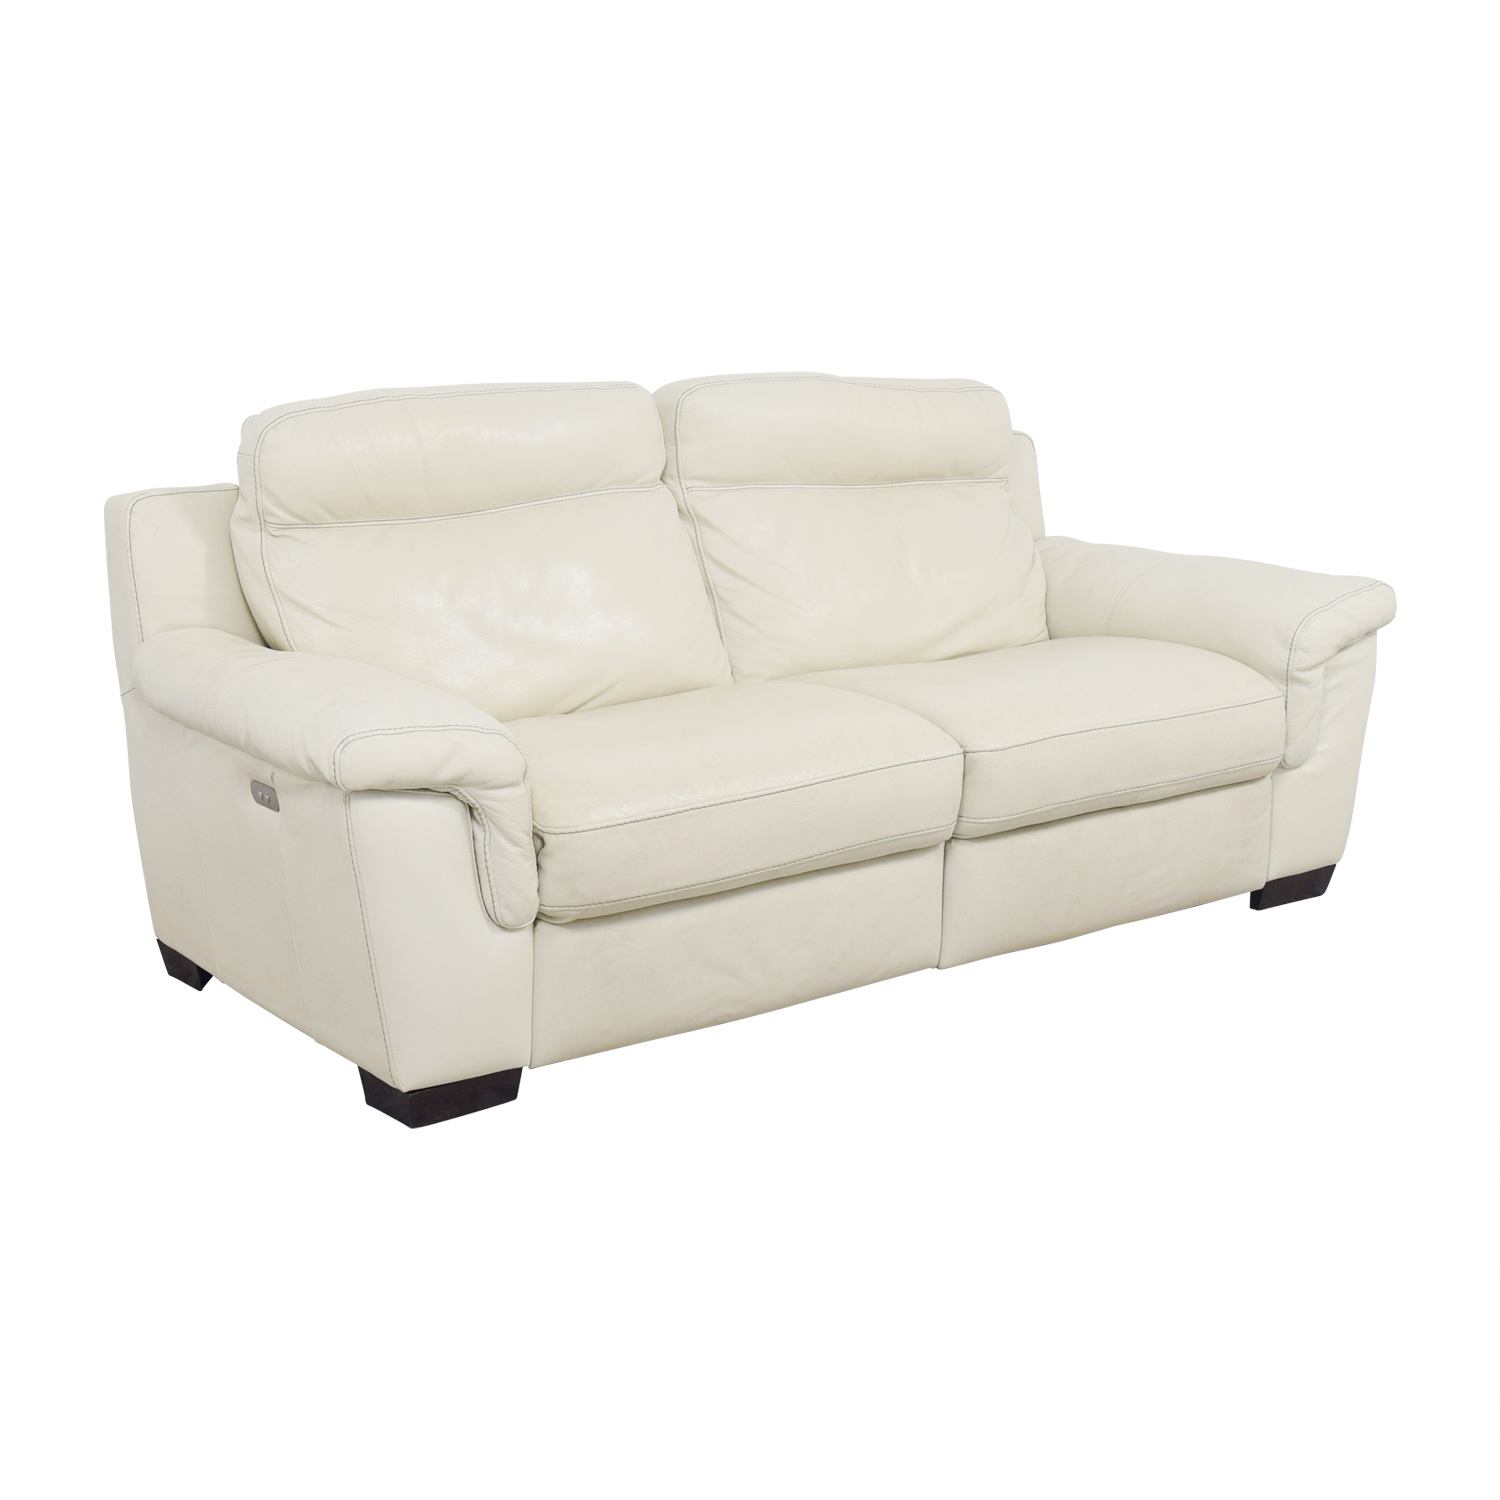 69% OFF - Macy\'s Macy\'s Off White Leather Recliner Sofa / Chairs